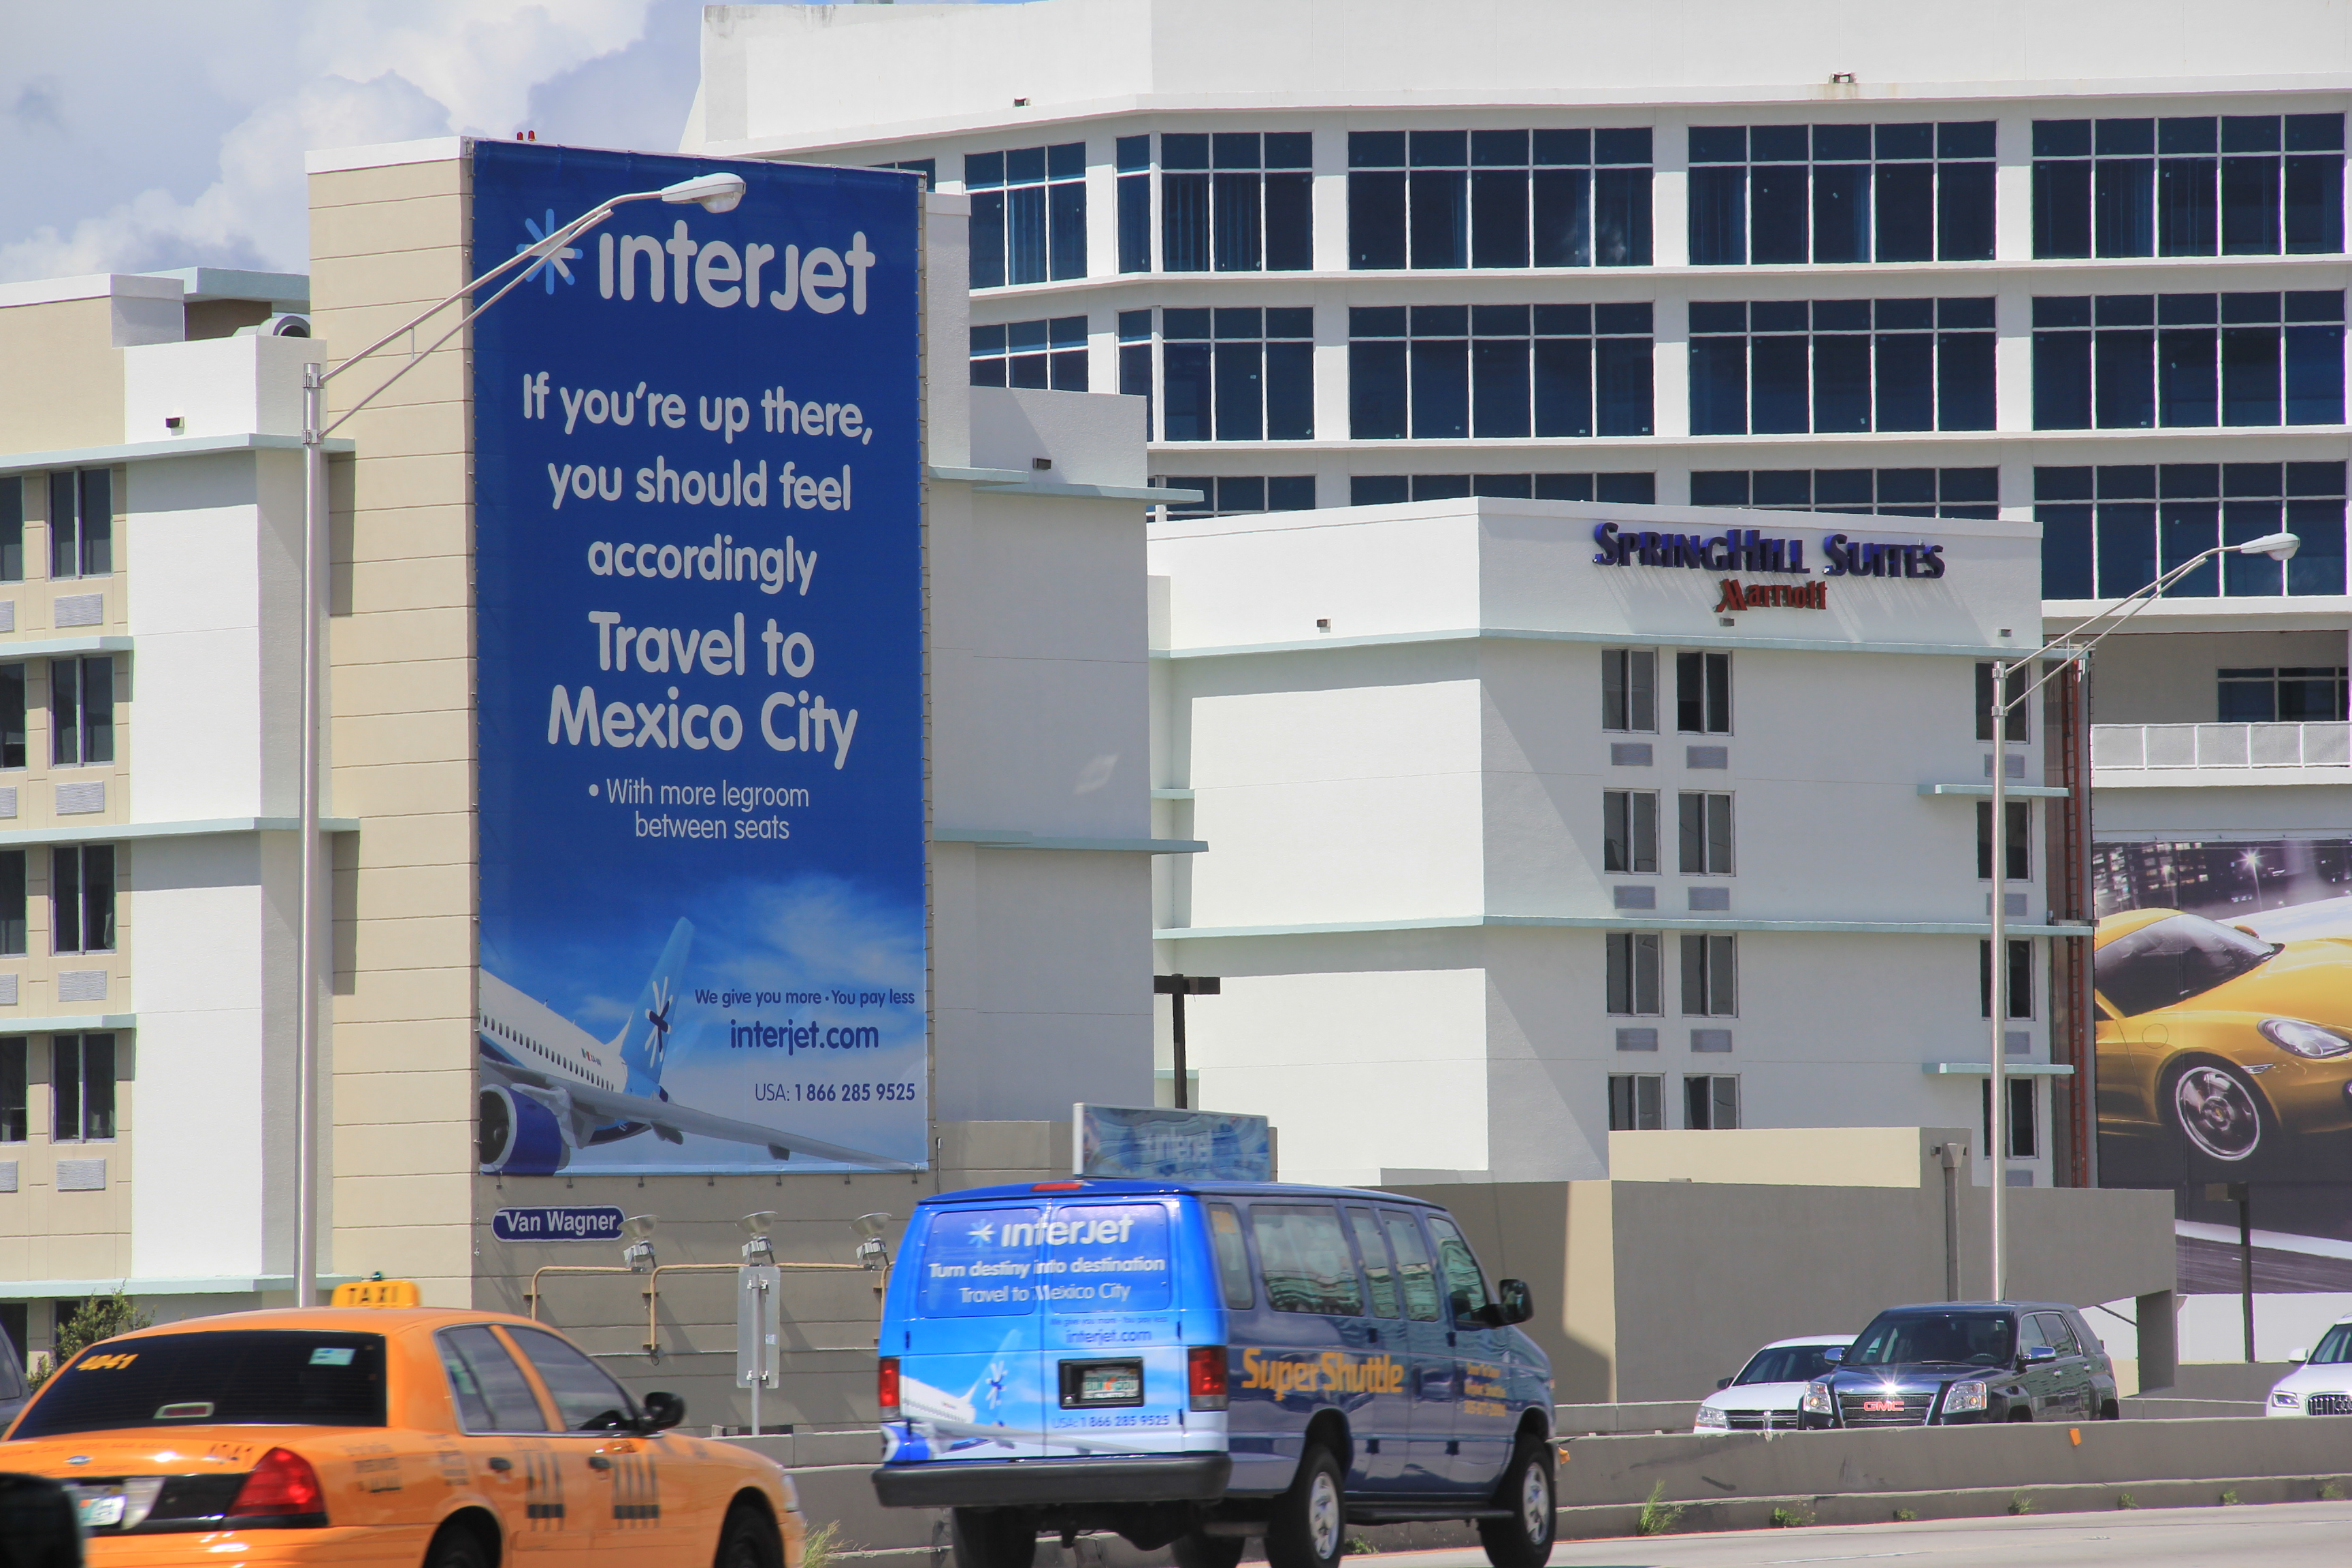 Interjet Airlines Ad on a SuperShuttle Airport Shuttle